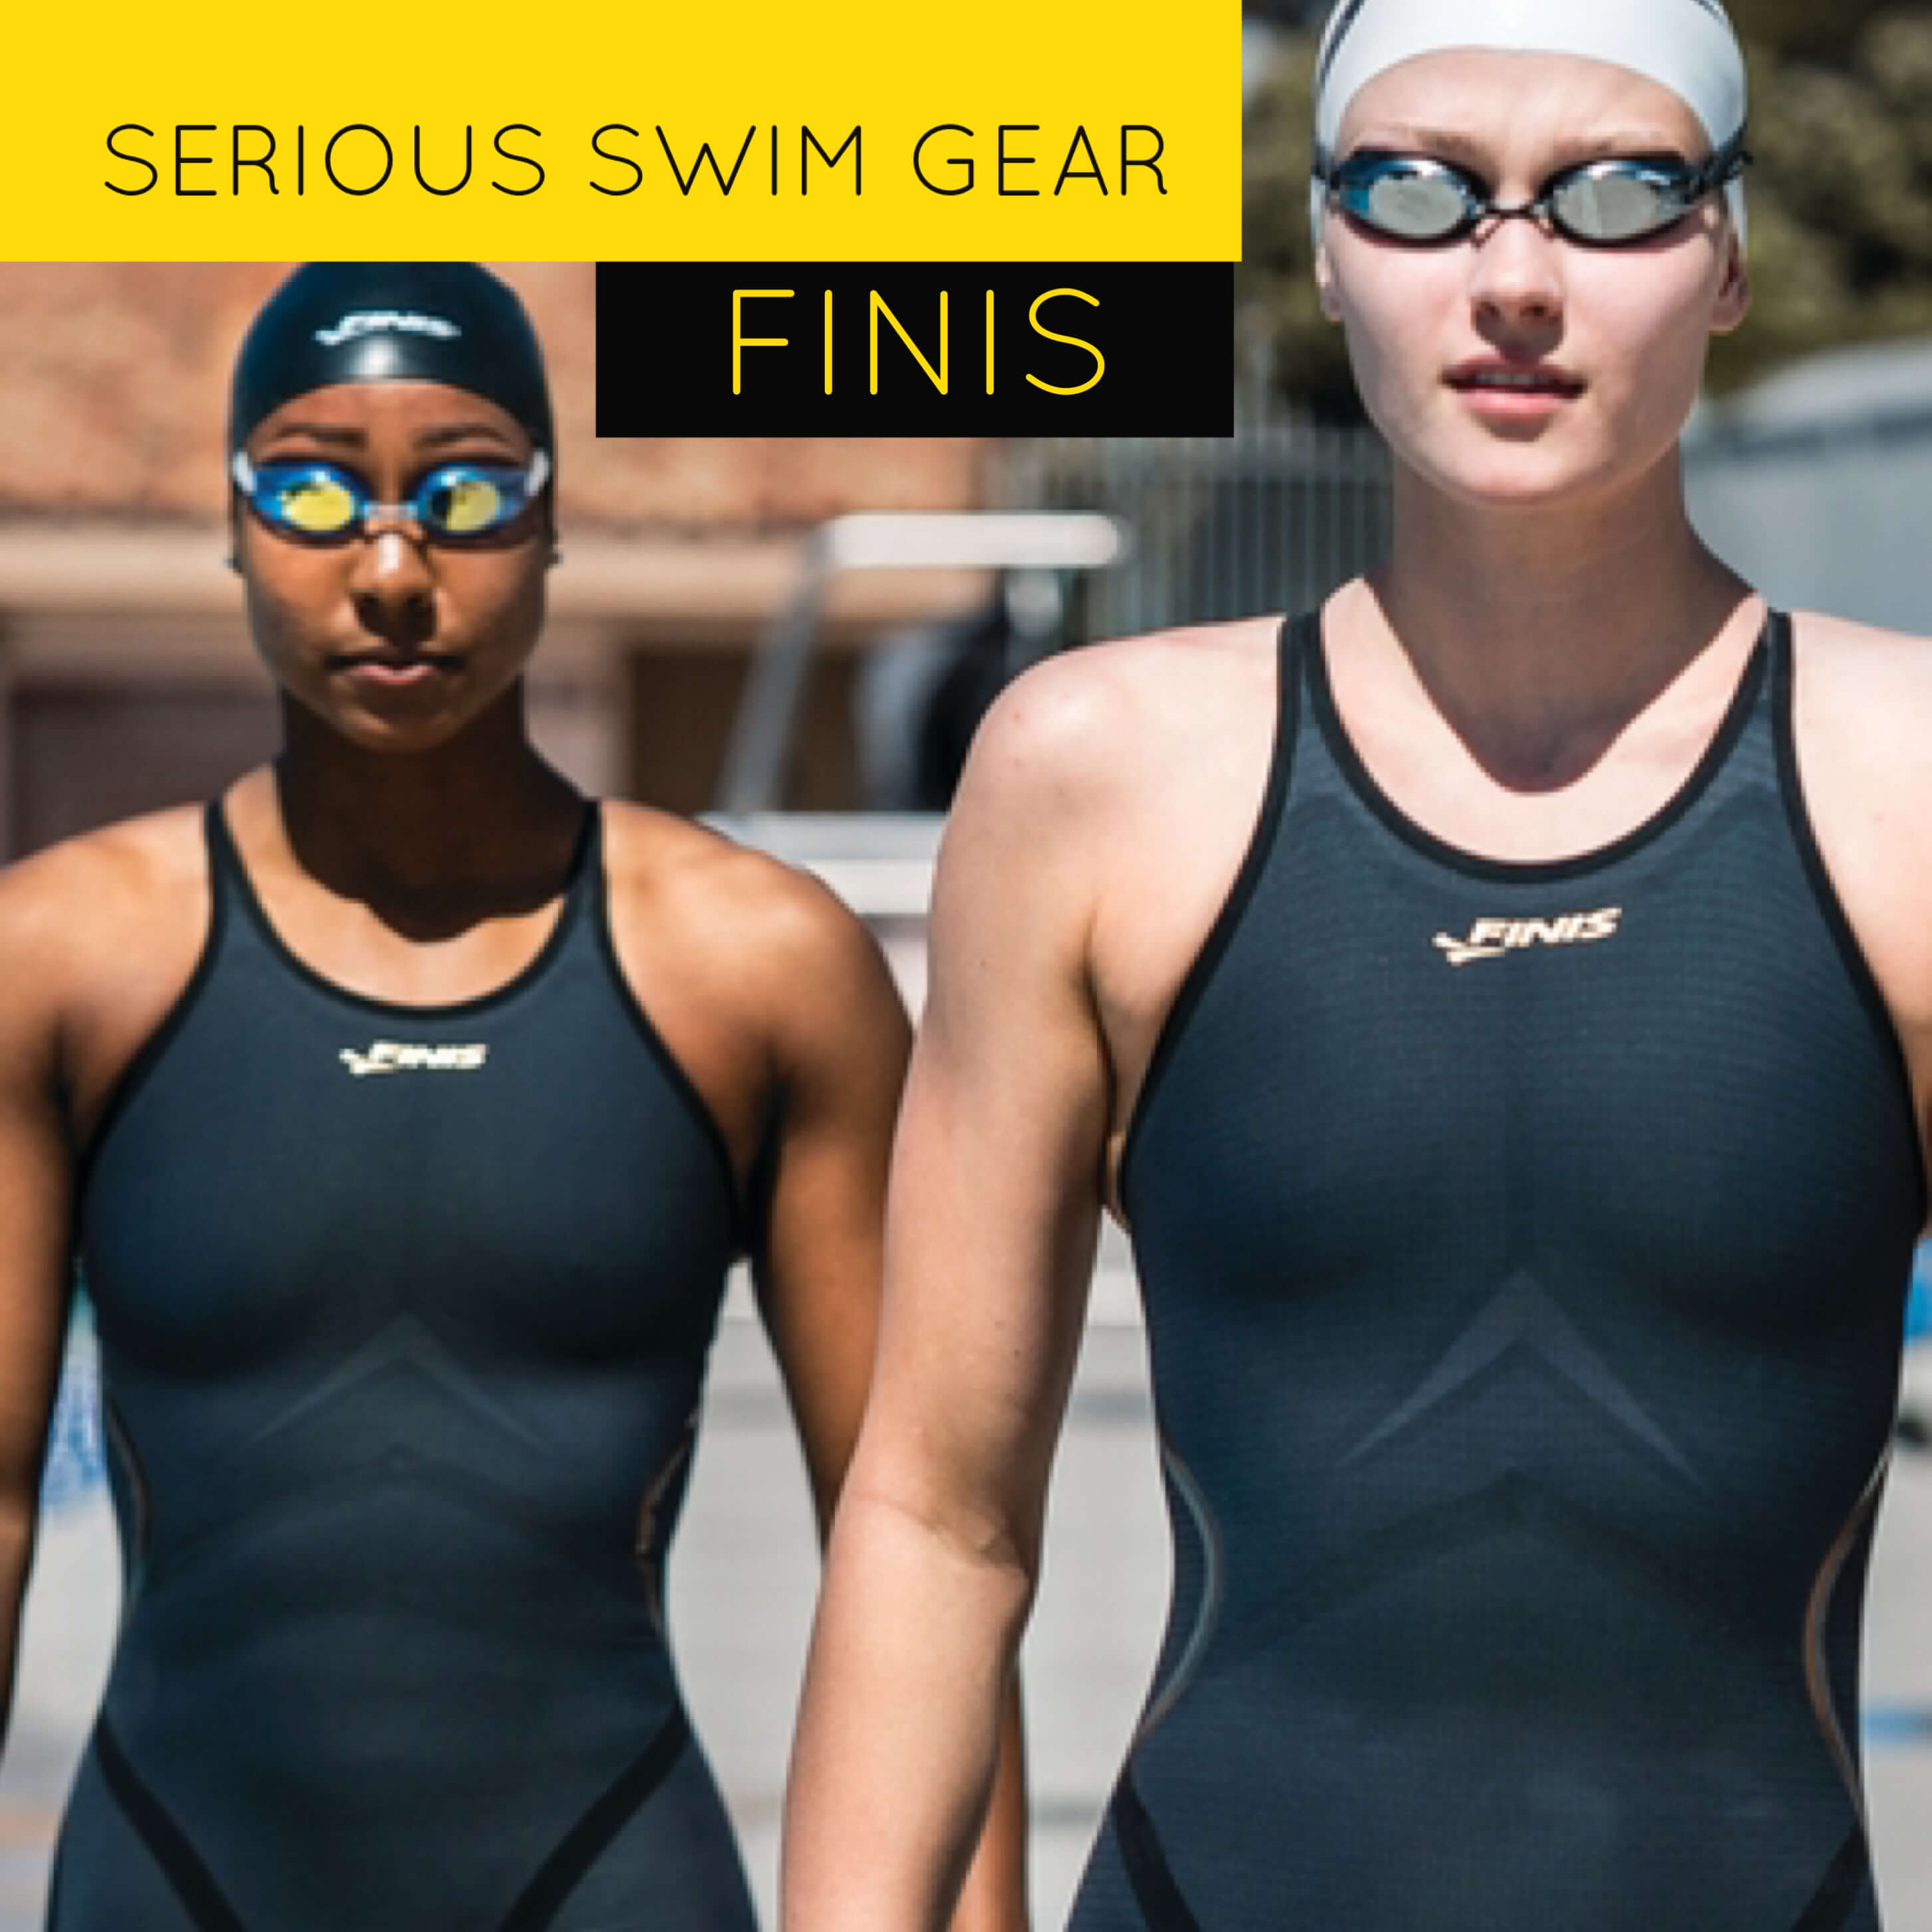 FINIS develops serious swim equipment to help competitive swimmers achieve their best